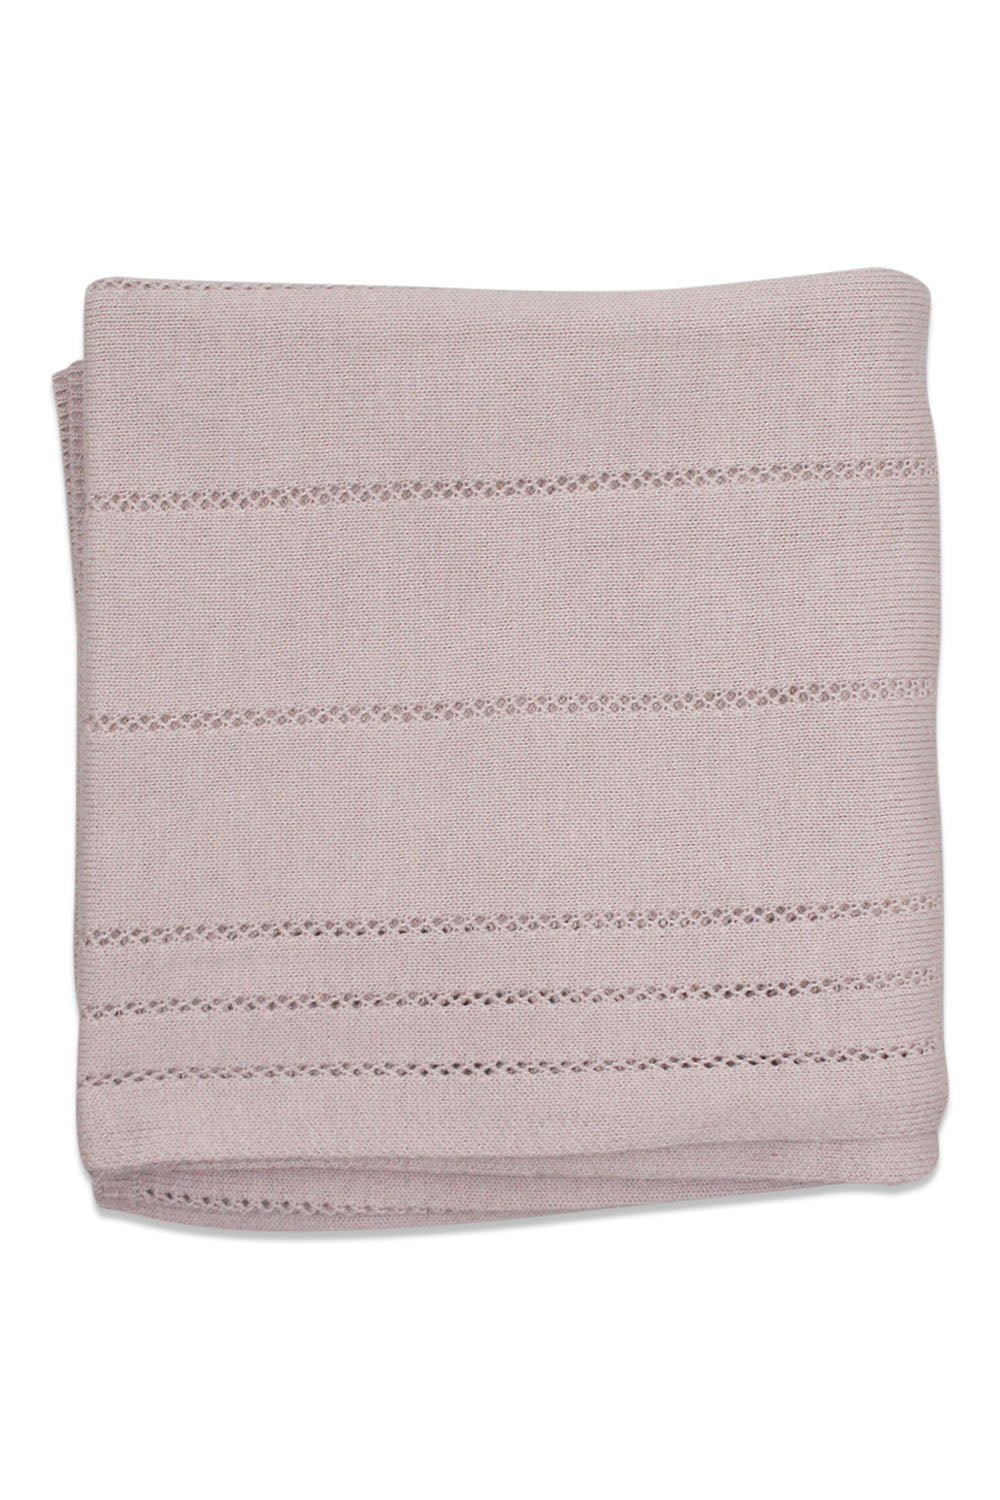 Kipp Mauve Cable Blanket